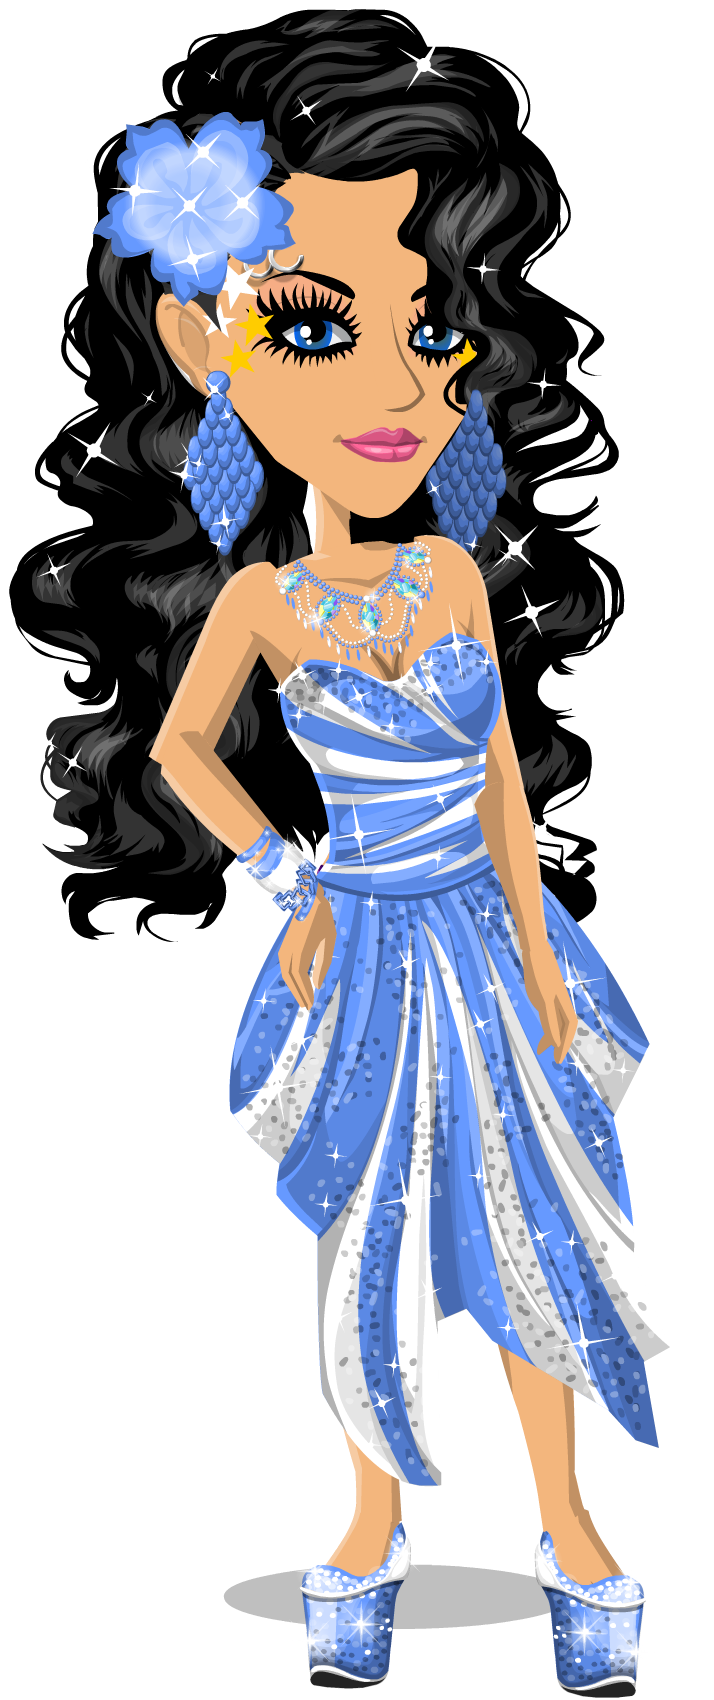 Image - MSP mybeau | MovieStarPlanet Wiki | FANDOM powered ...